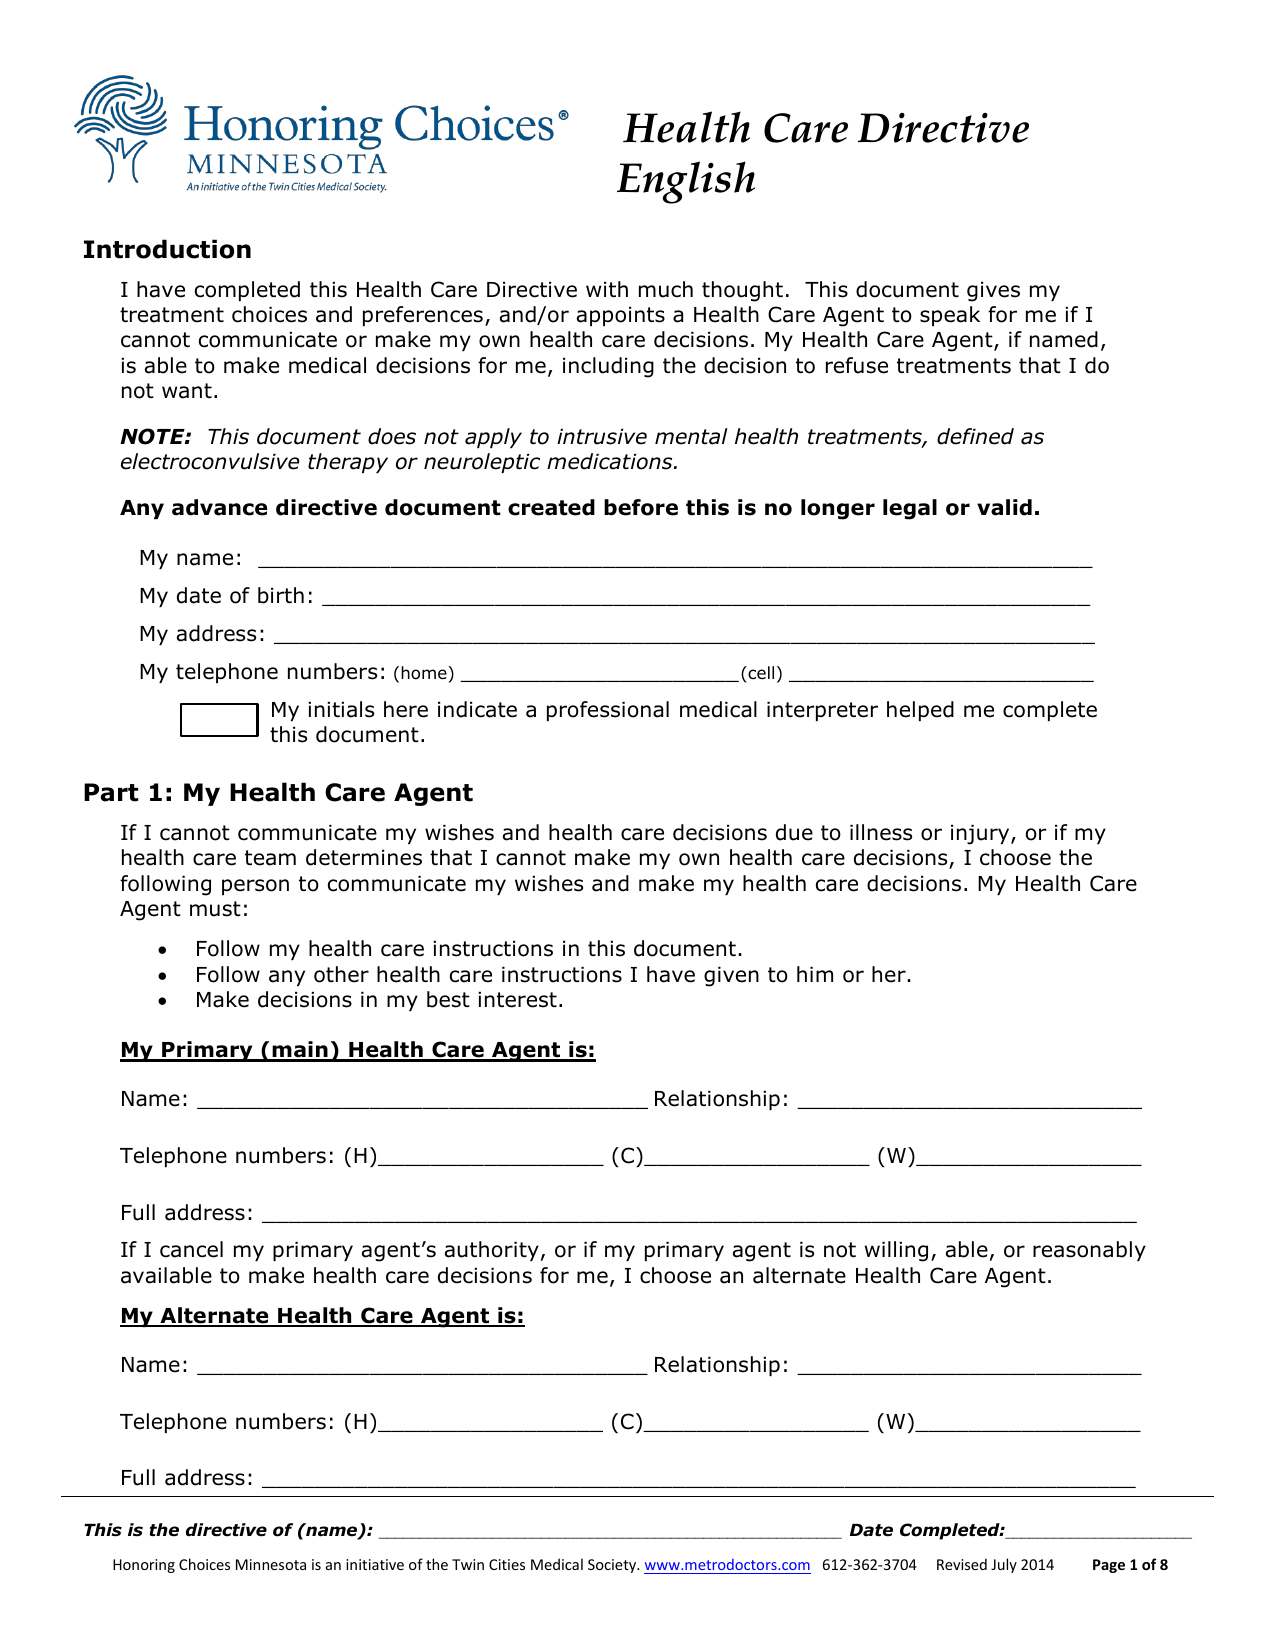 download minnesota living will form  u2013 advance directive